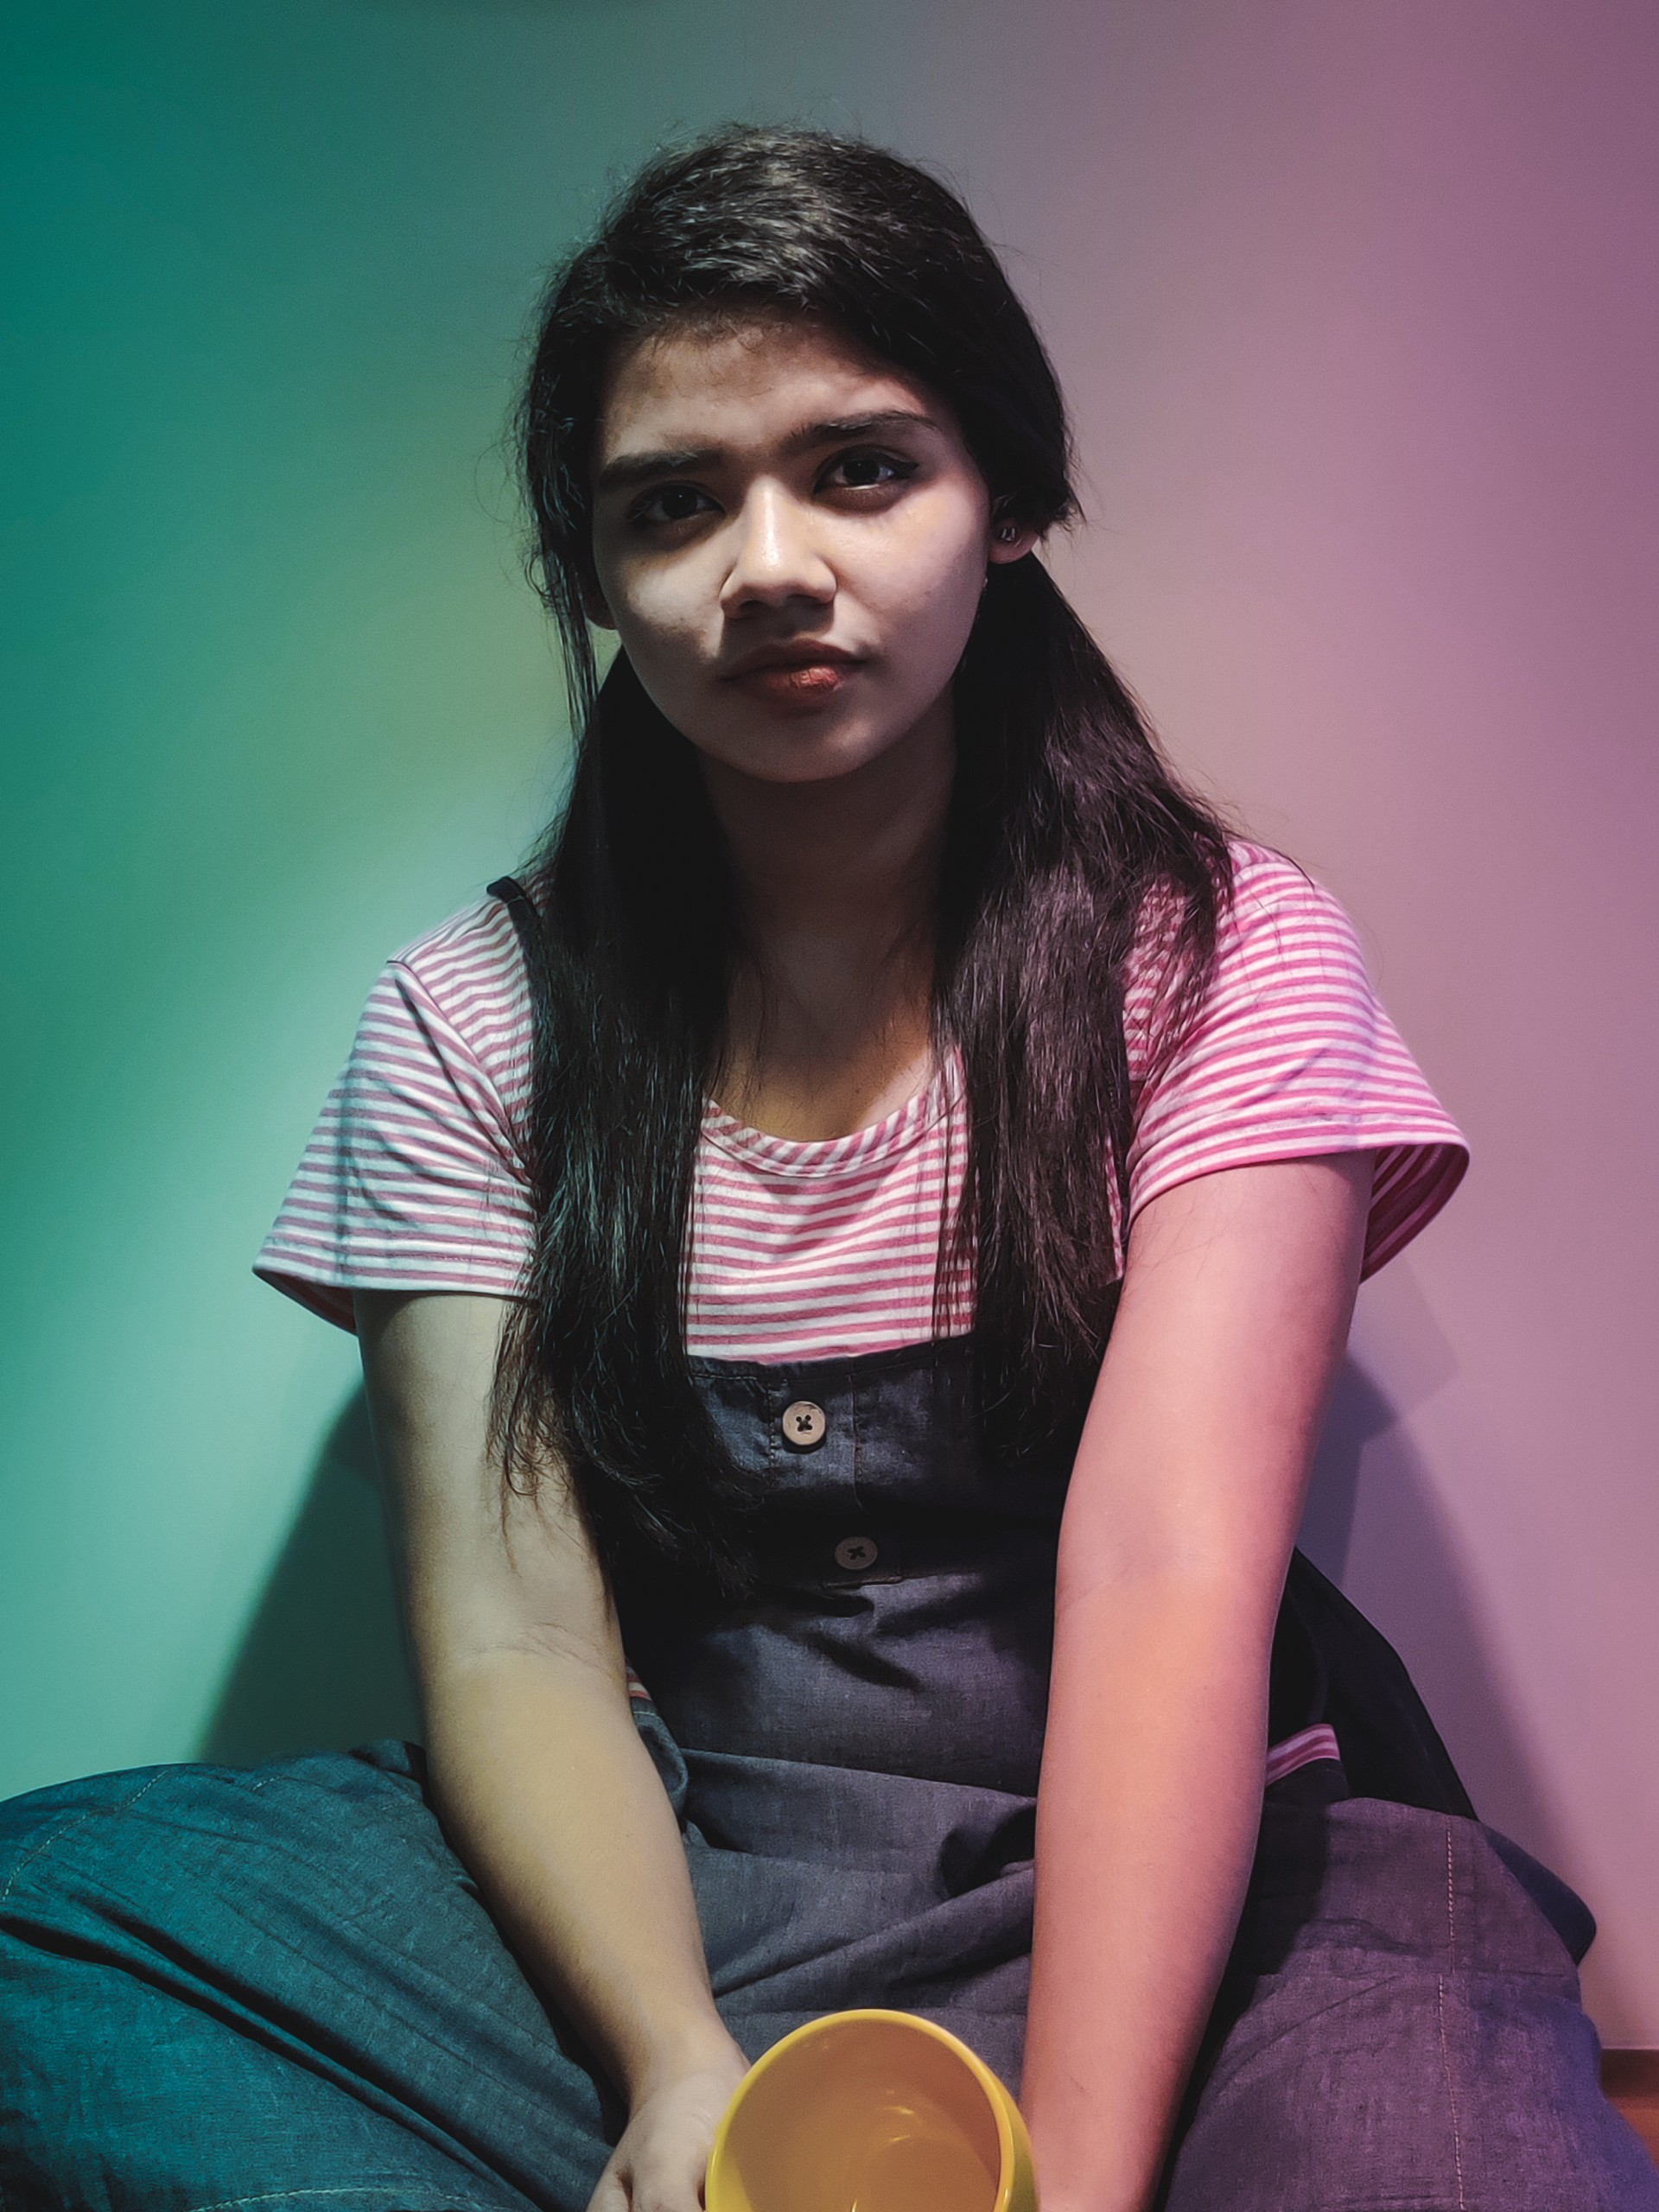 girl model with gradient background